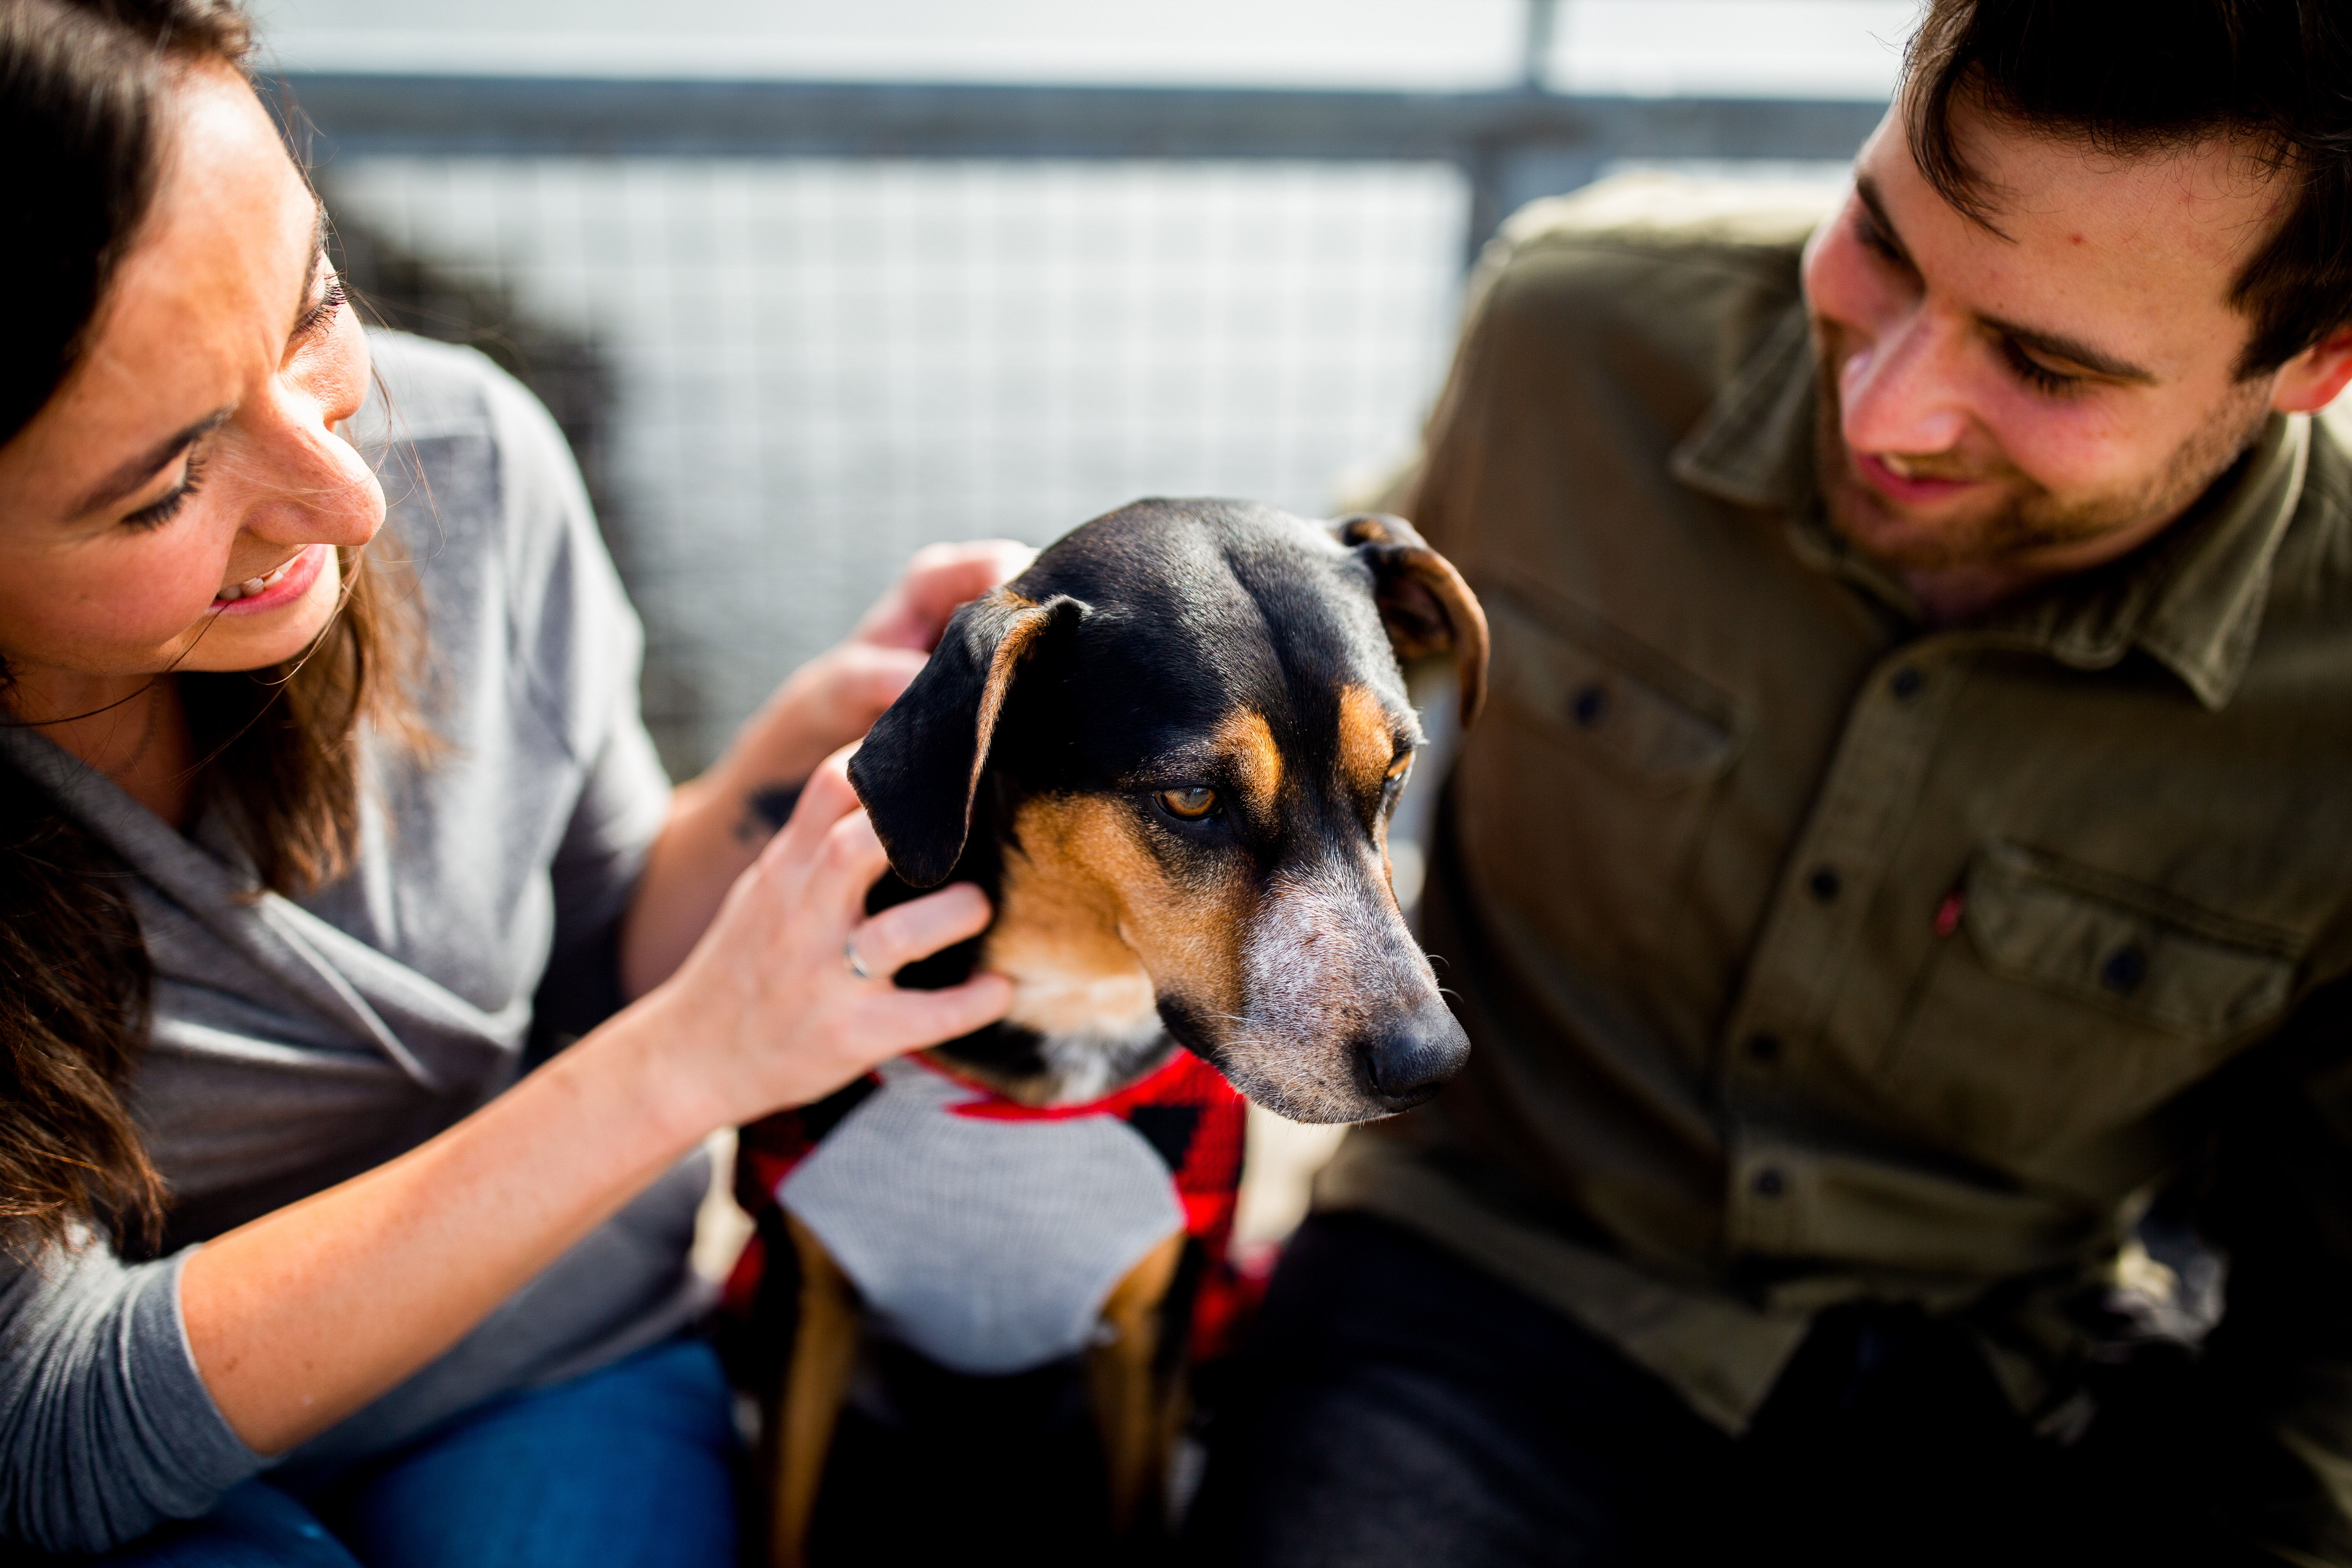 Adopting Dogs Increases Popularity, Says OkCupid Study